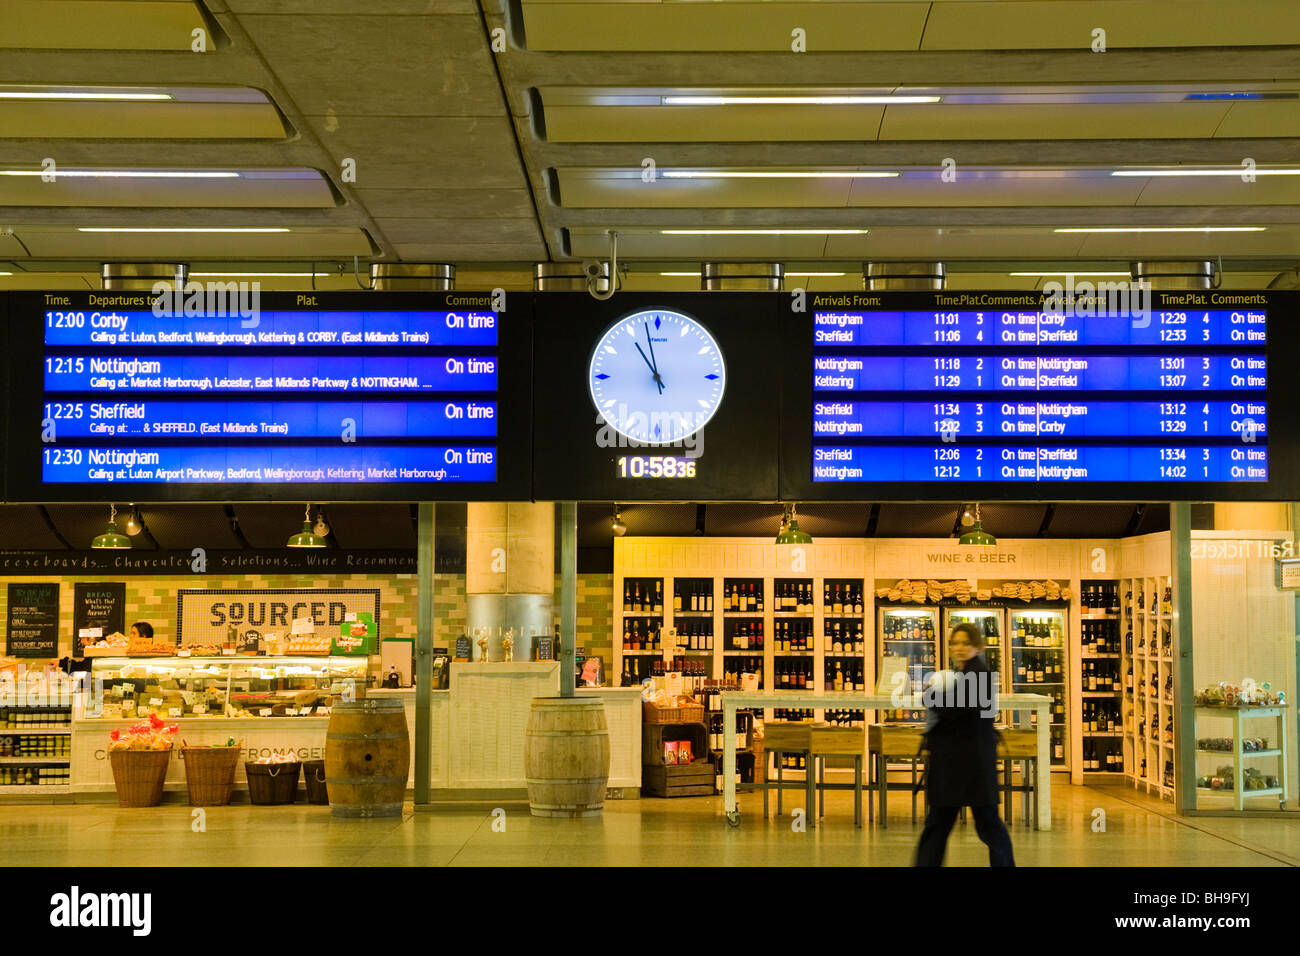 London St Pancras Station departure & arrival times noticeboard or sign with analogue & digital clocks in - Stock Image